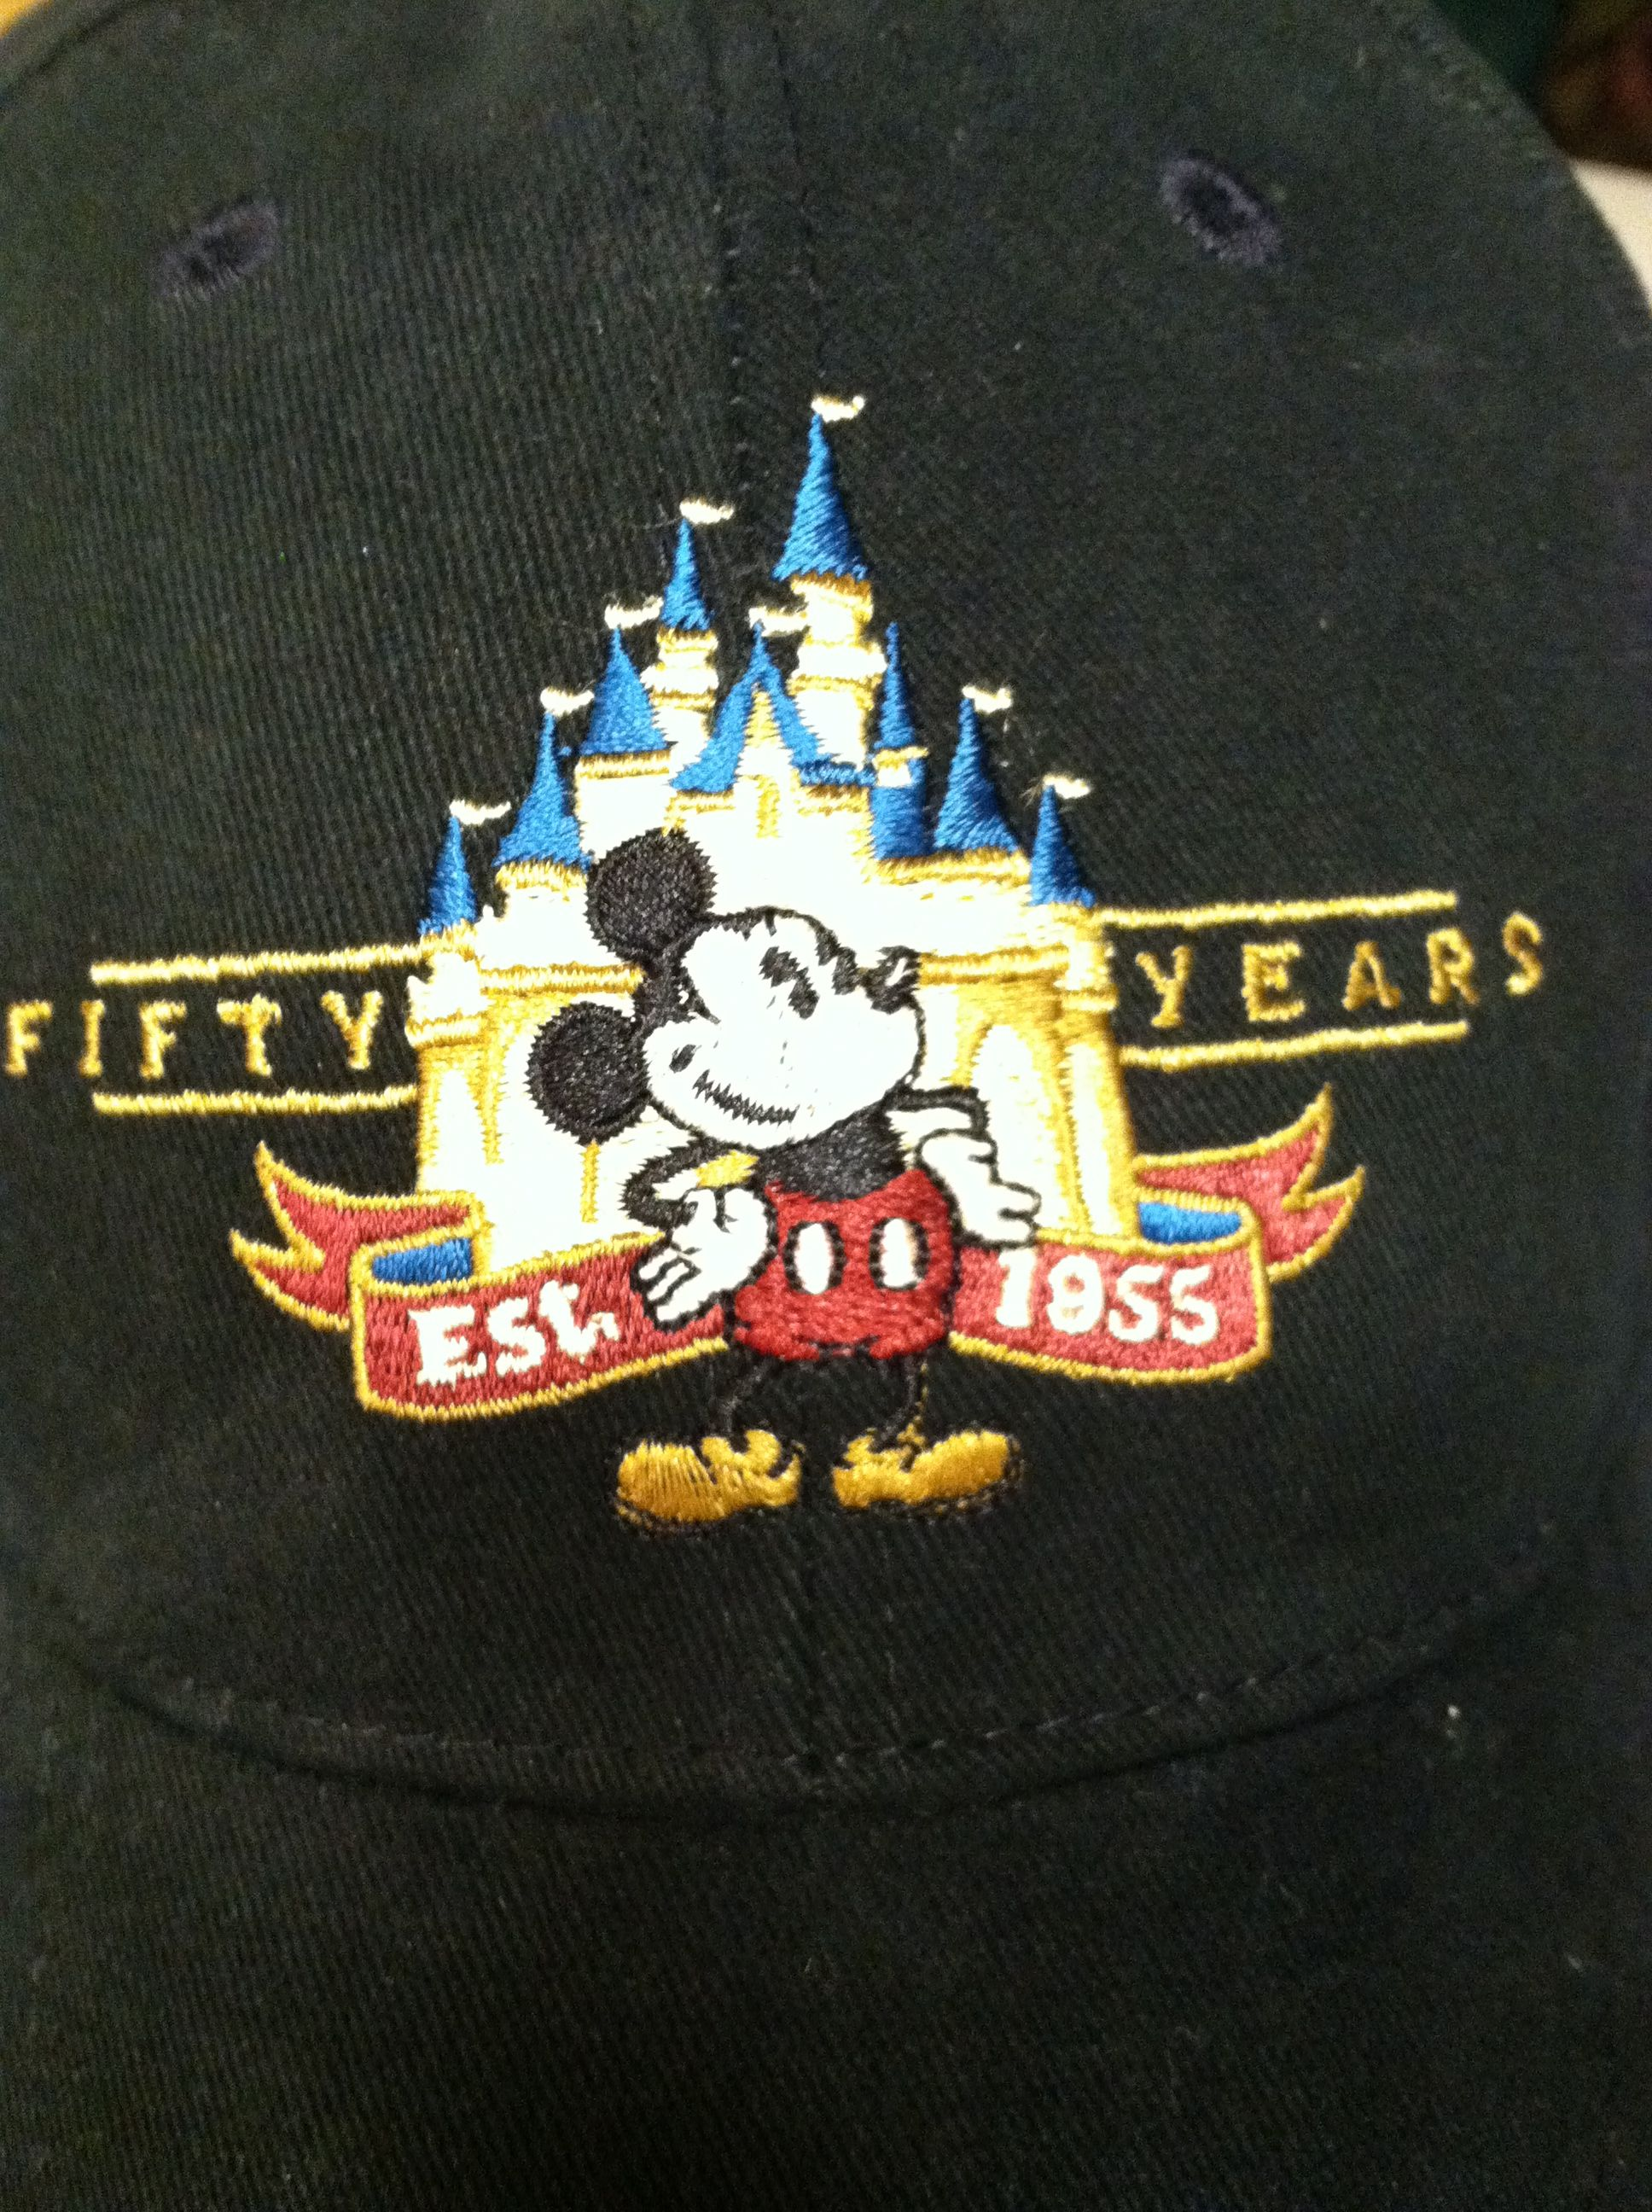 50th trip anniversary , does anyone especially family have a set of gold ears? I don't know why I didn't buy??????